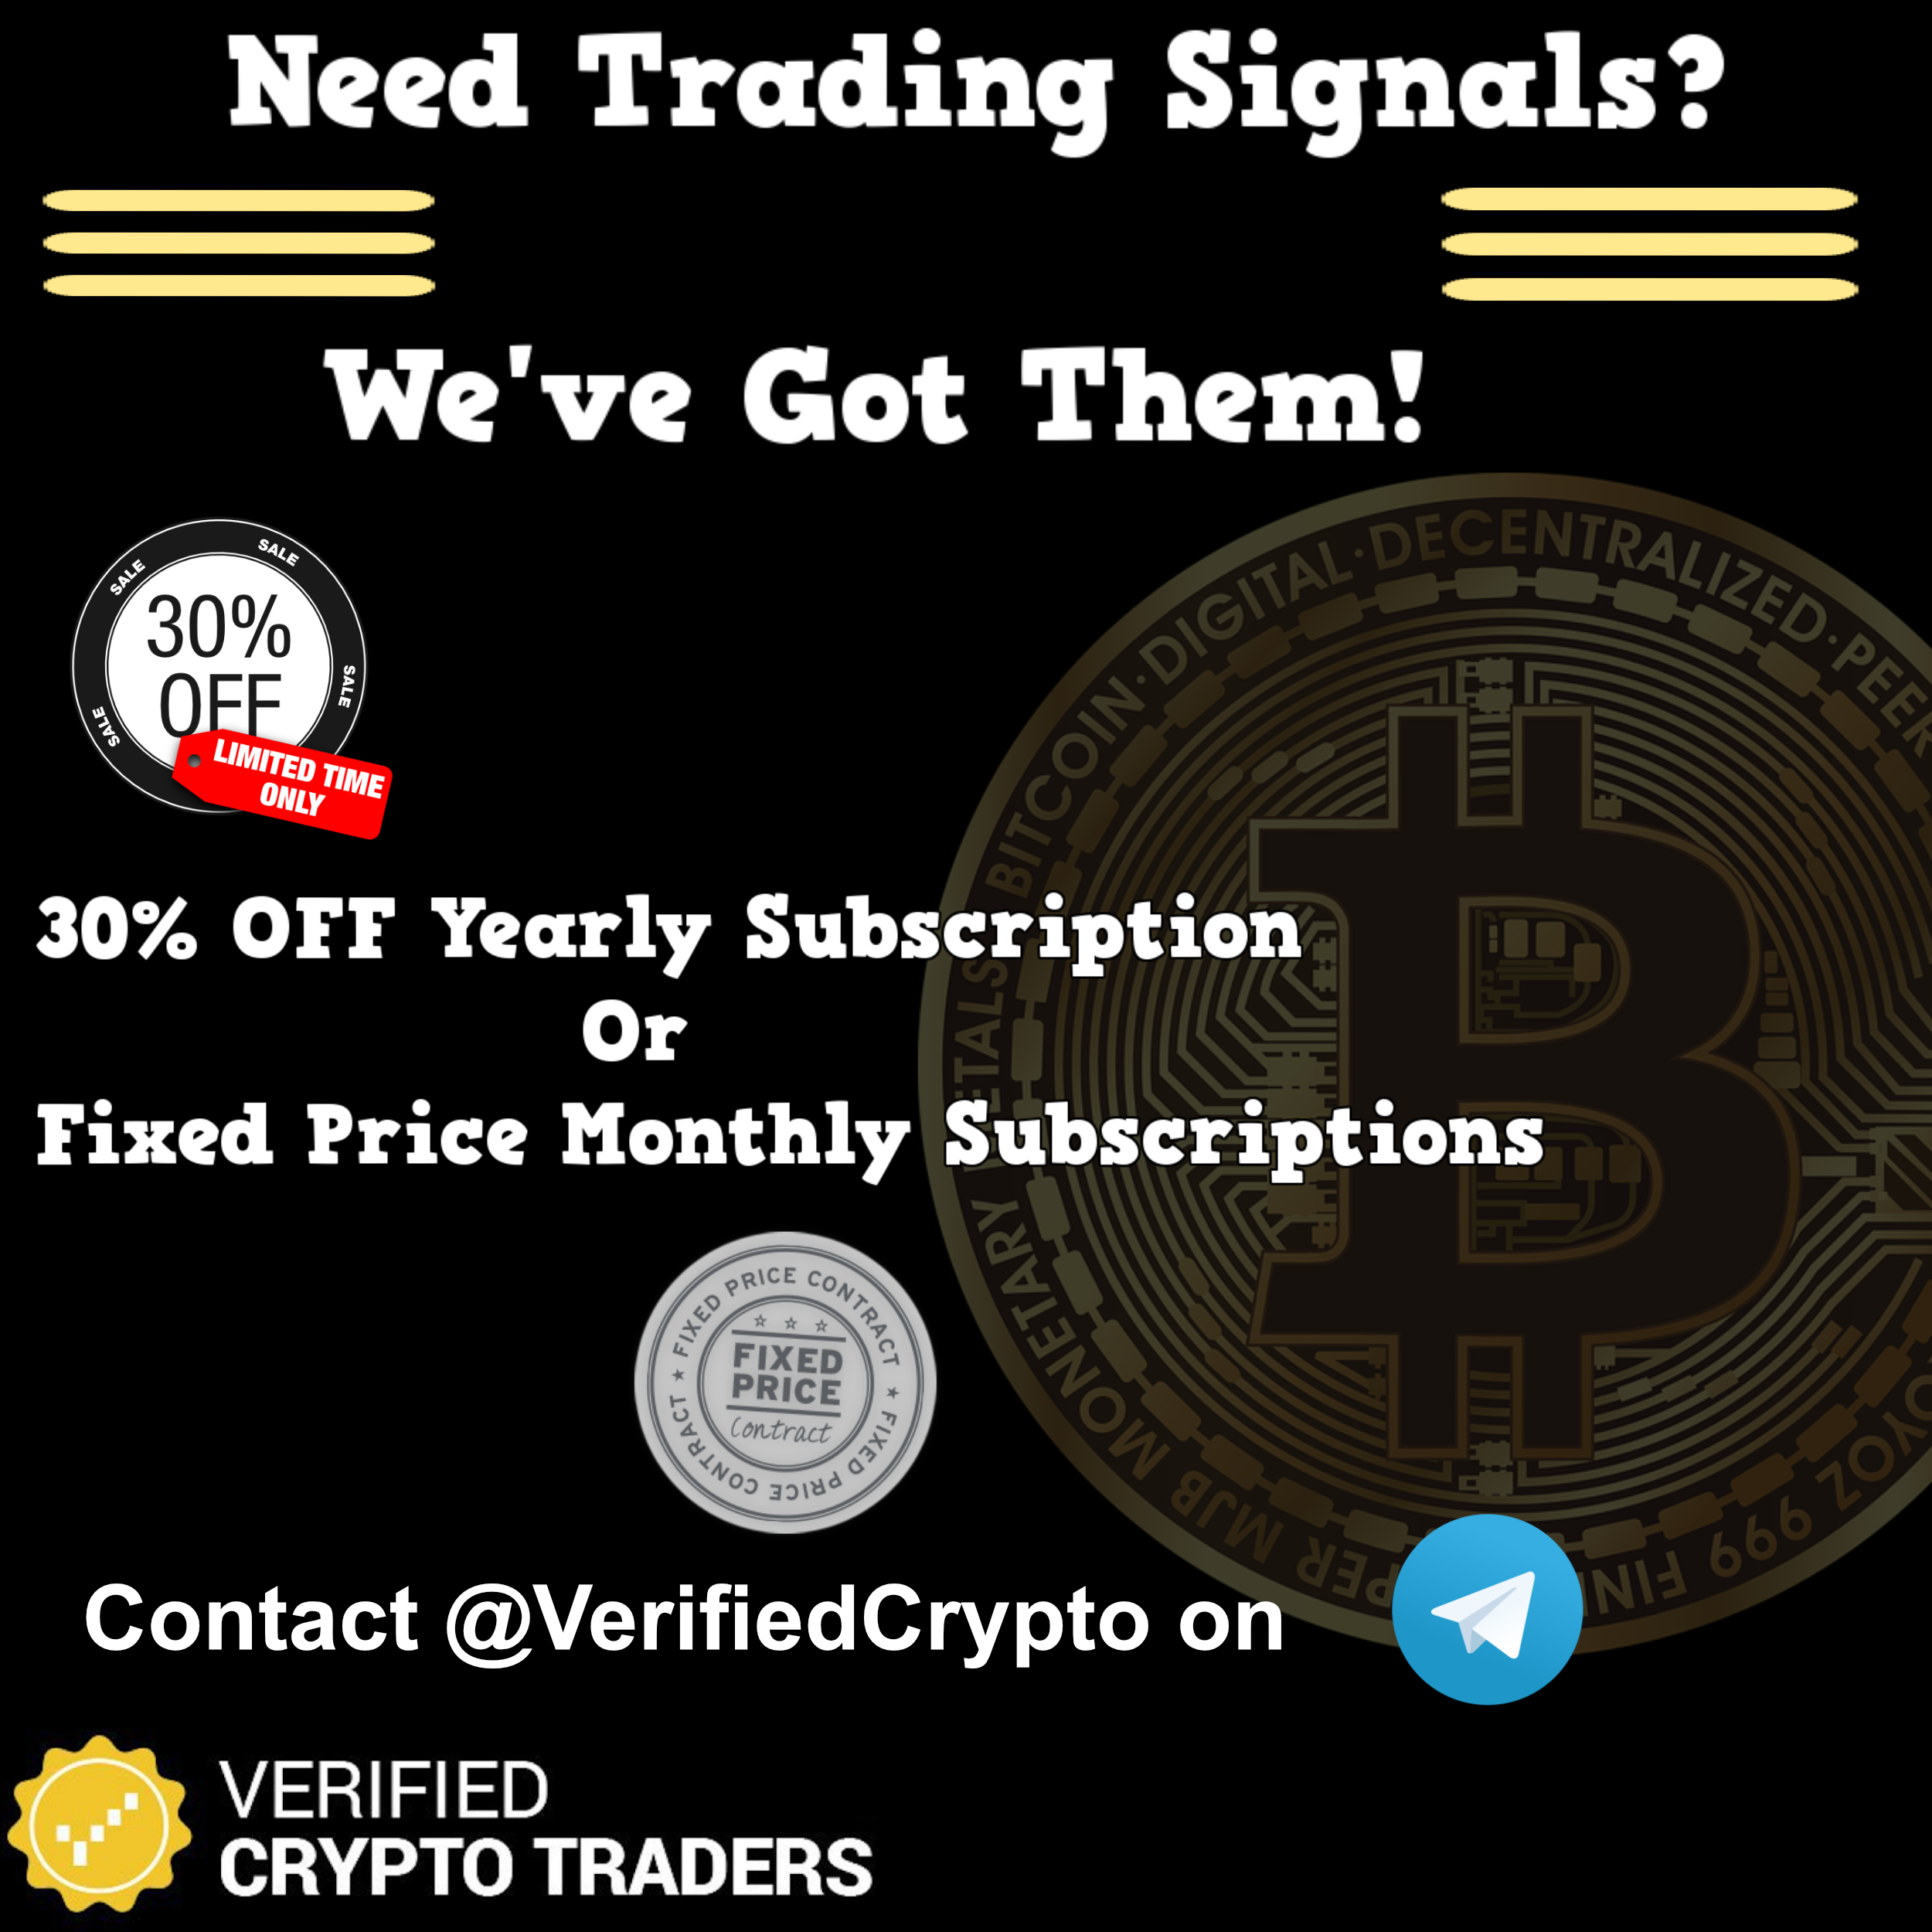 Looking For Trading Signals?